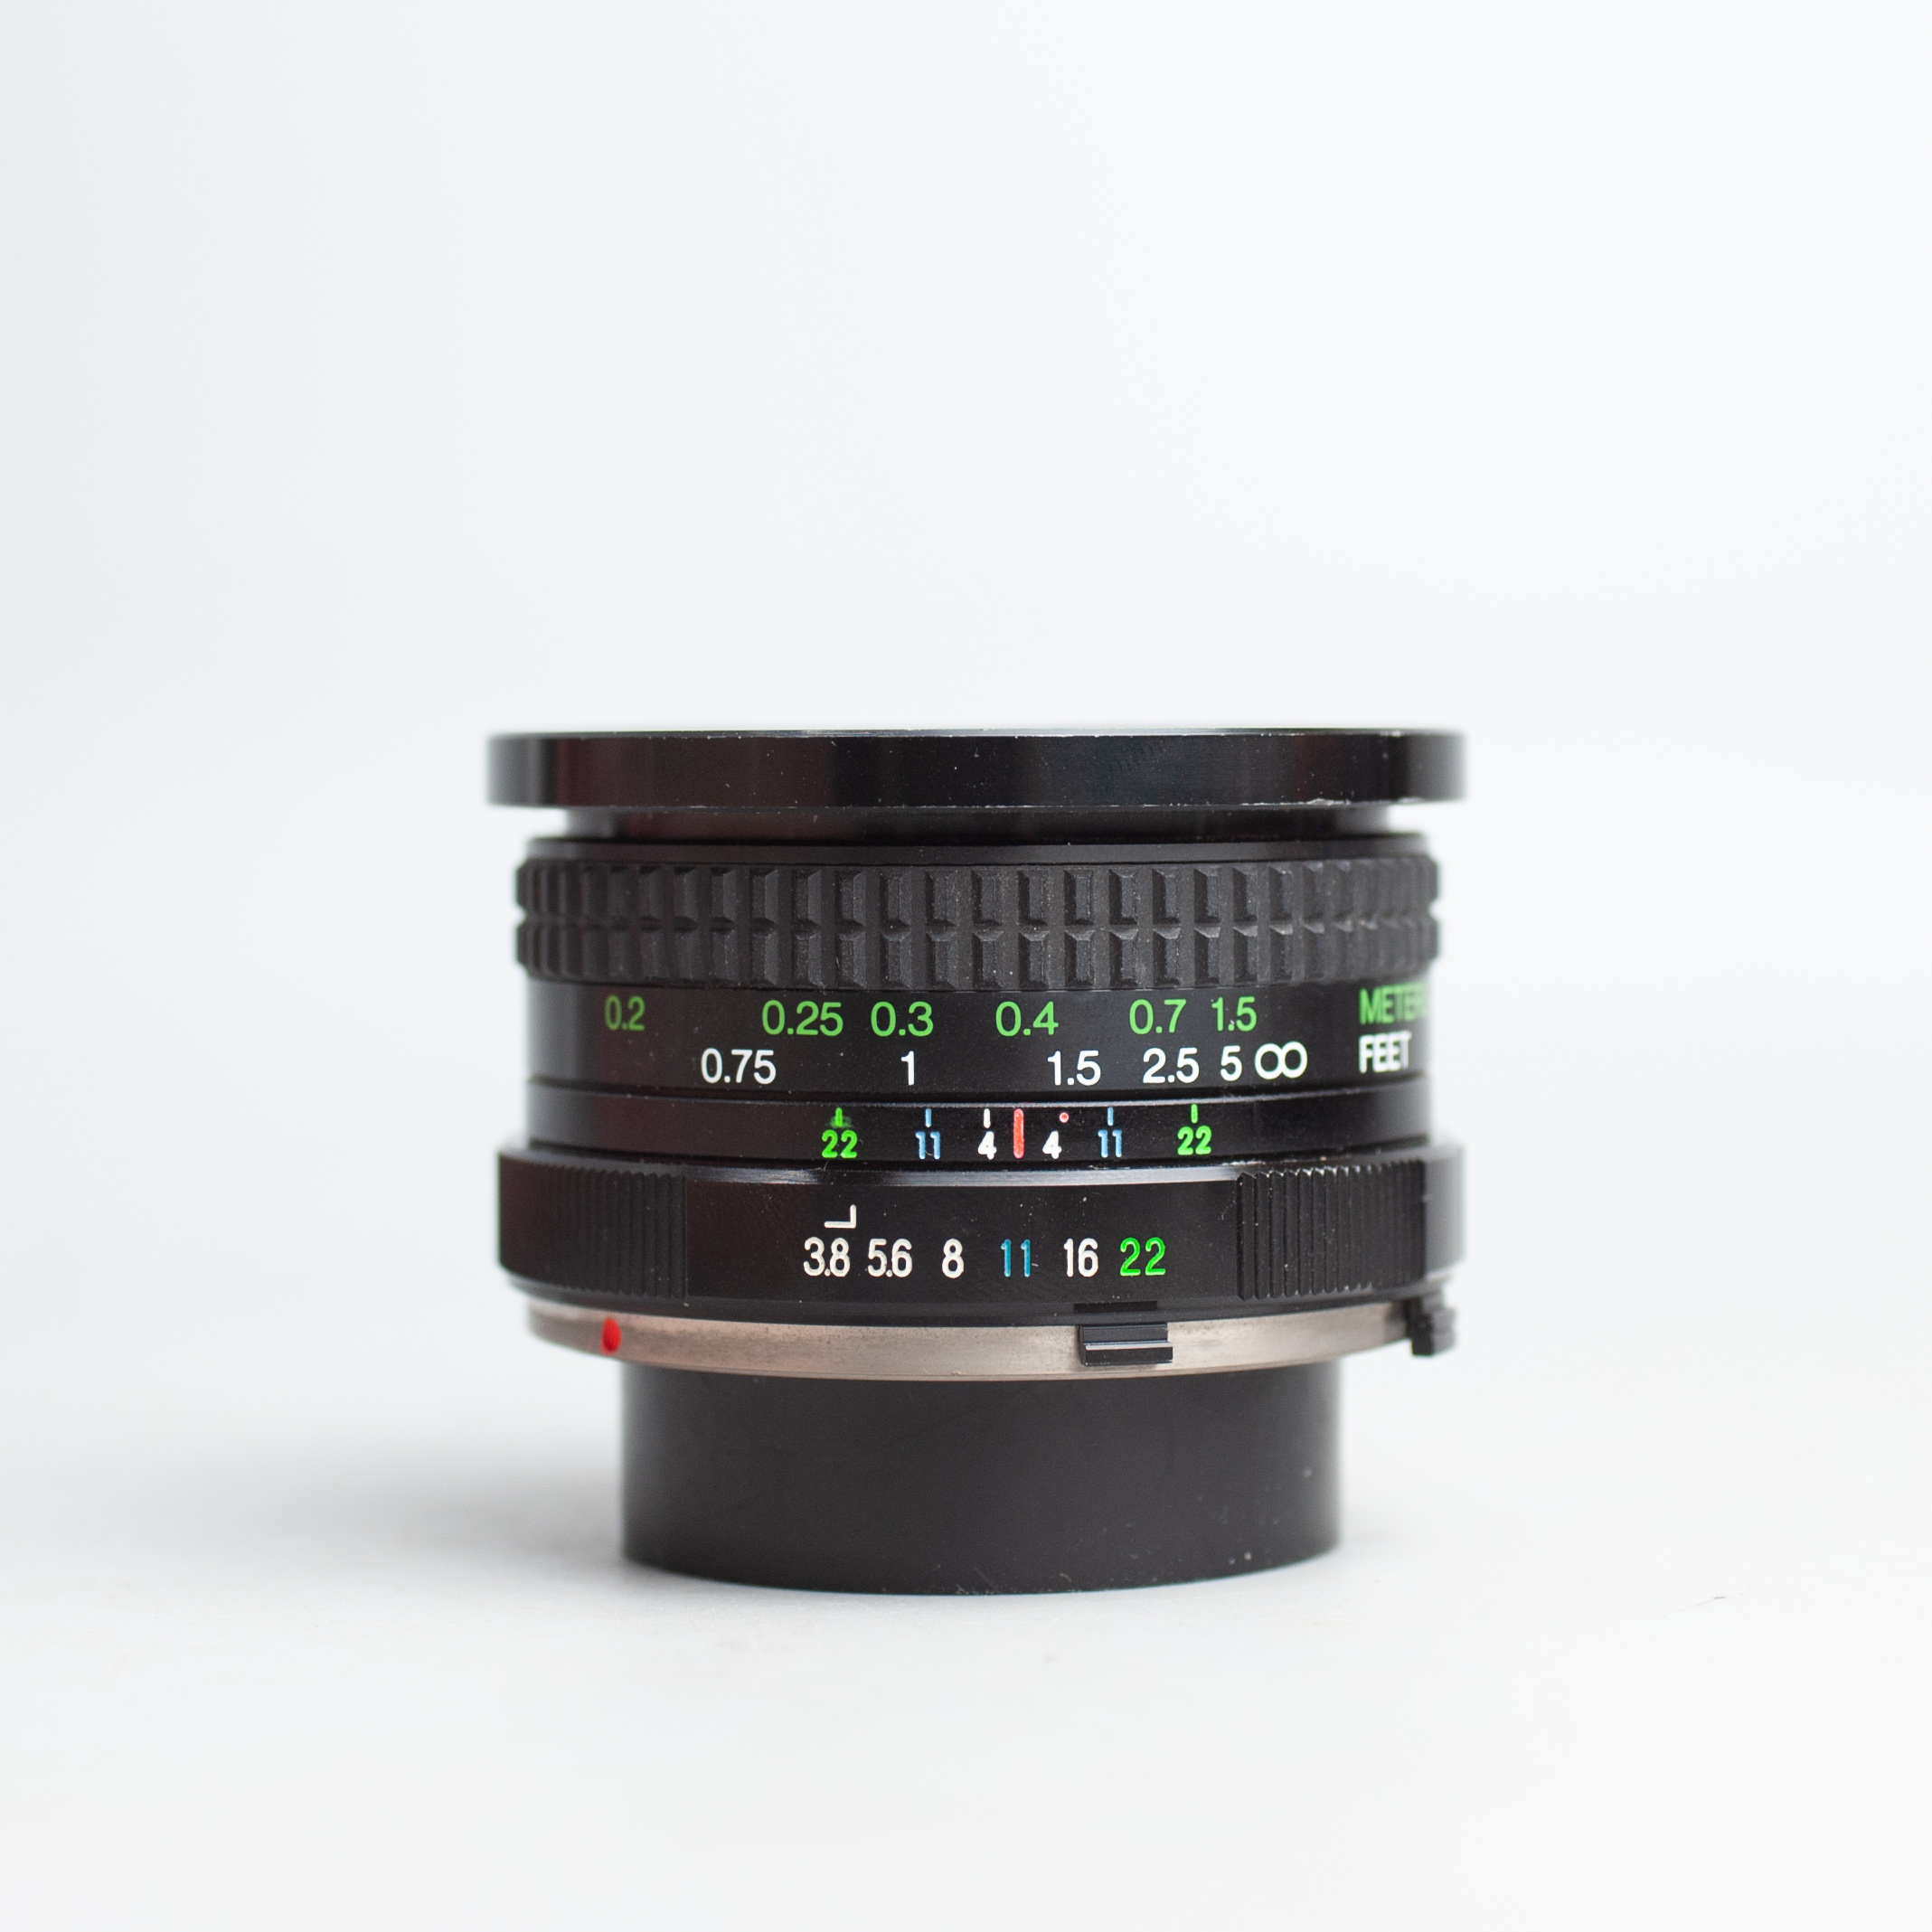 cosina-20mm-f3-8-mf-minolta-md-20-3-8-10782